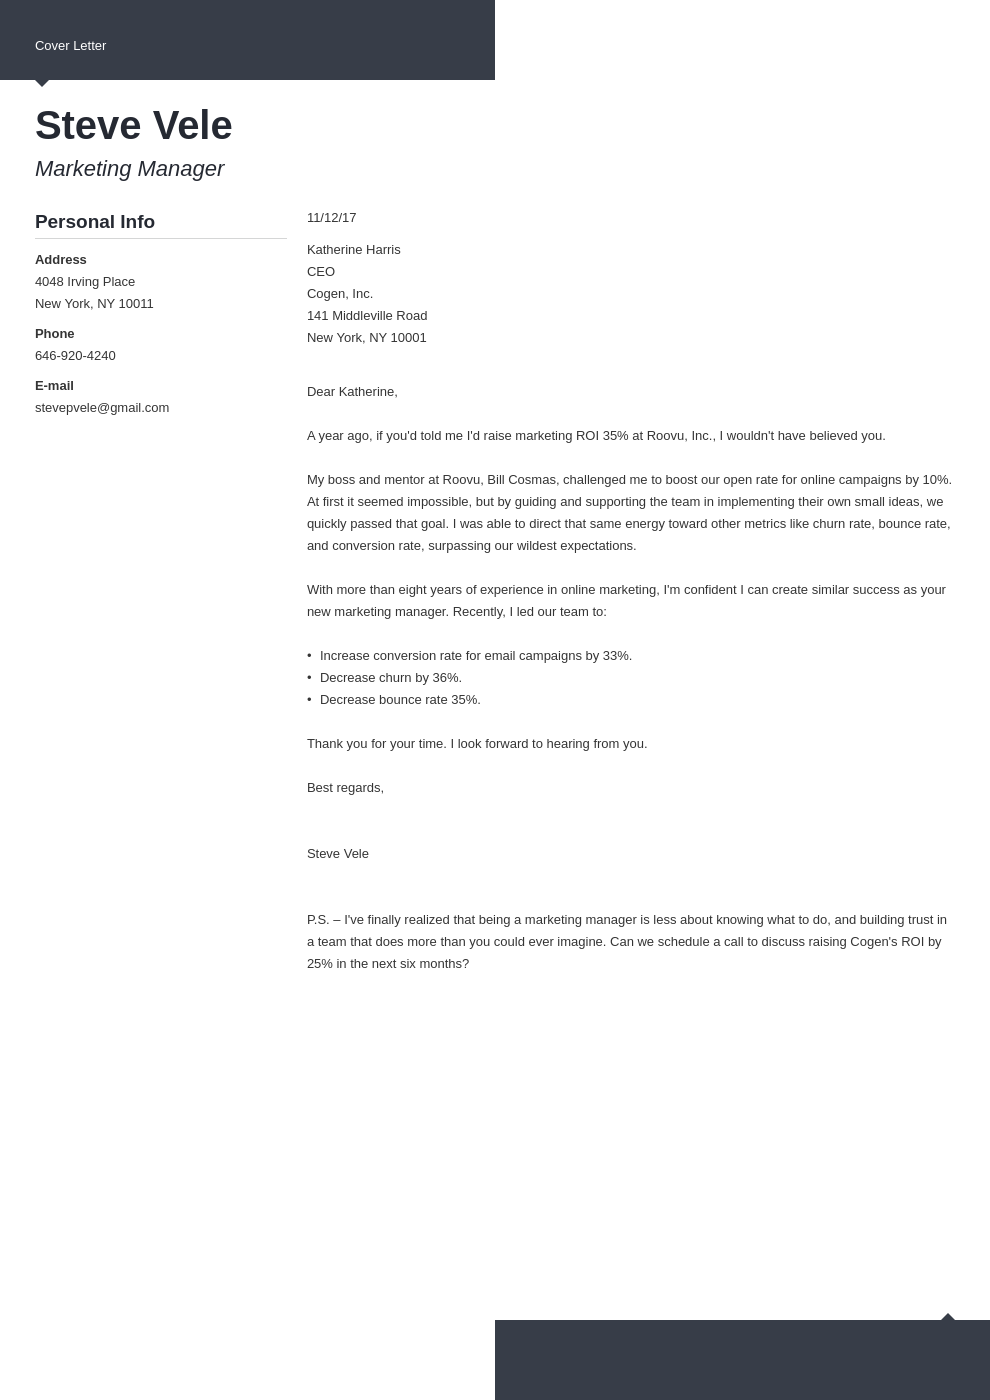 How To End A Cover Letter 20 Closing